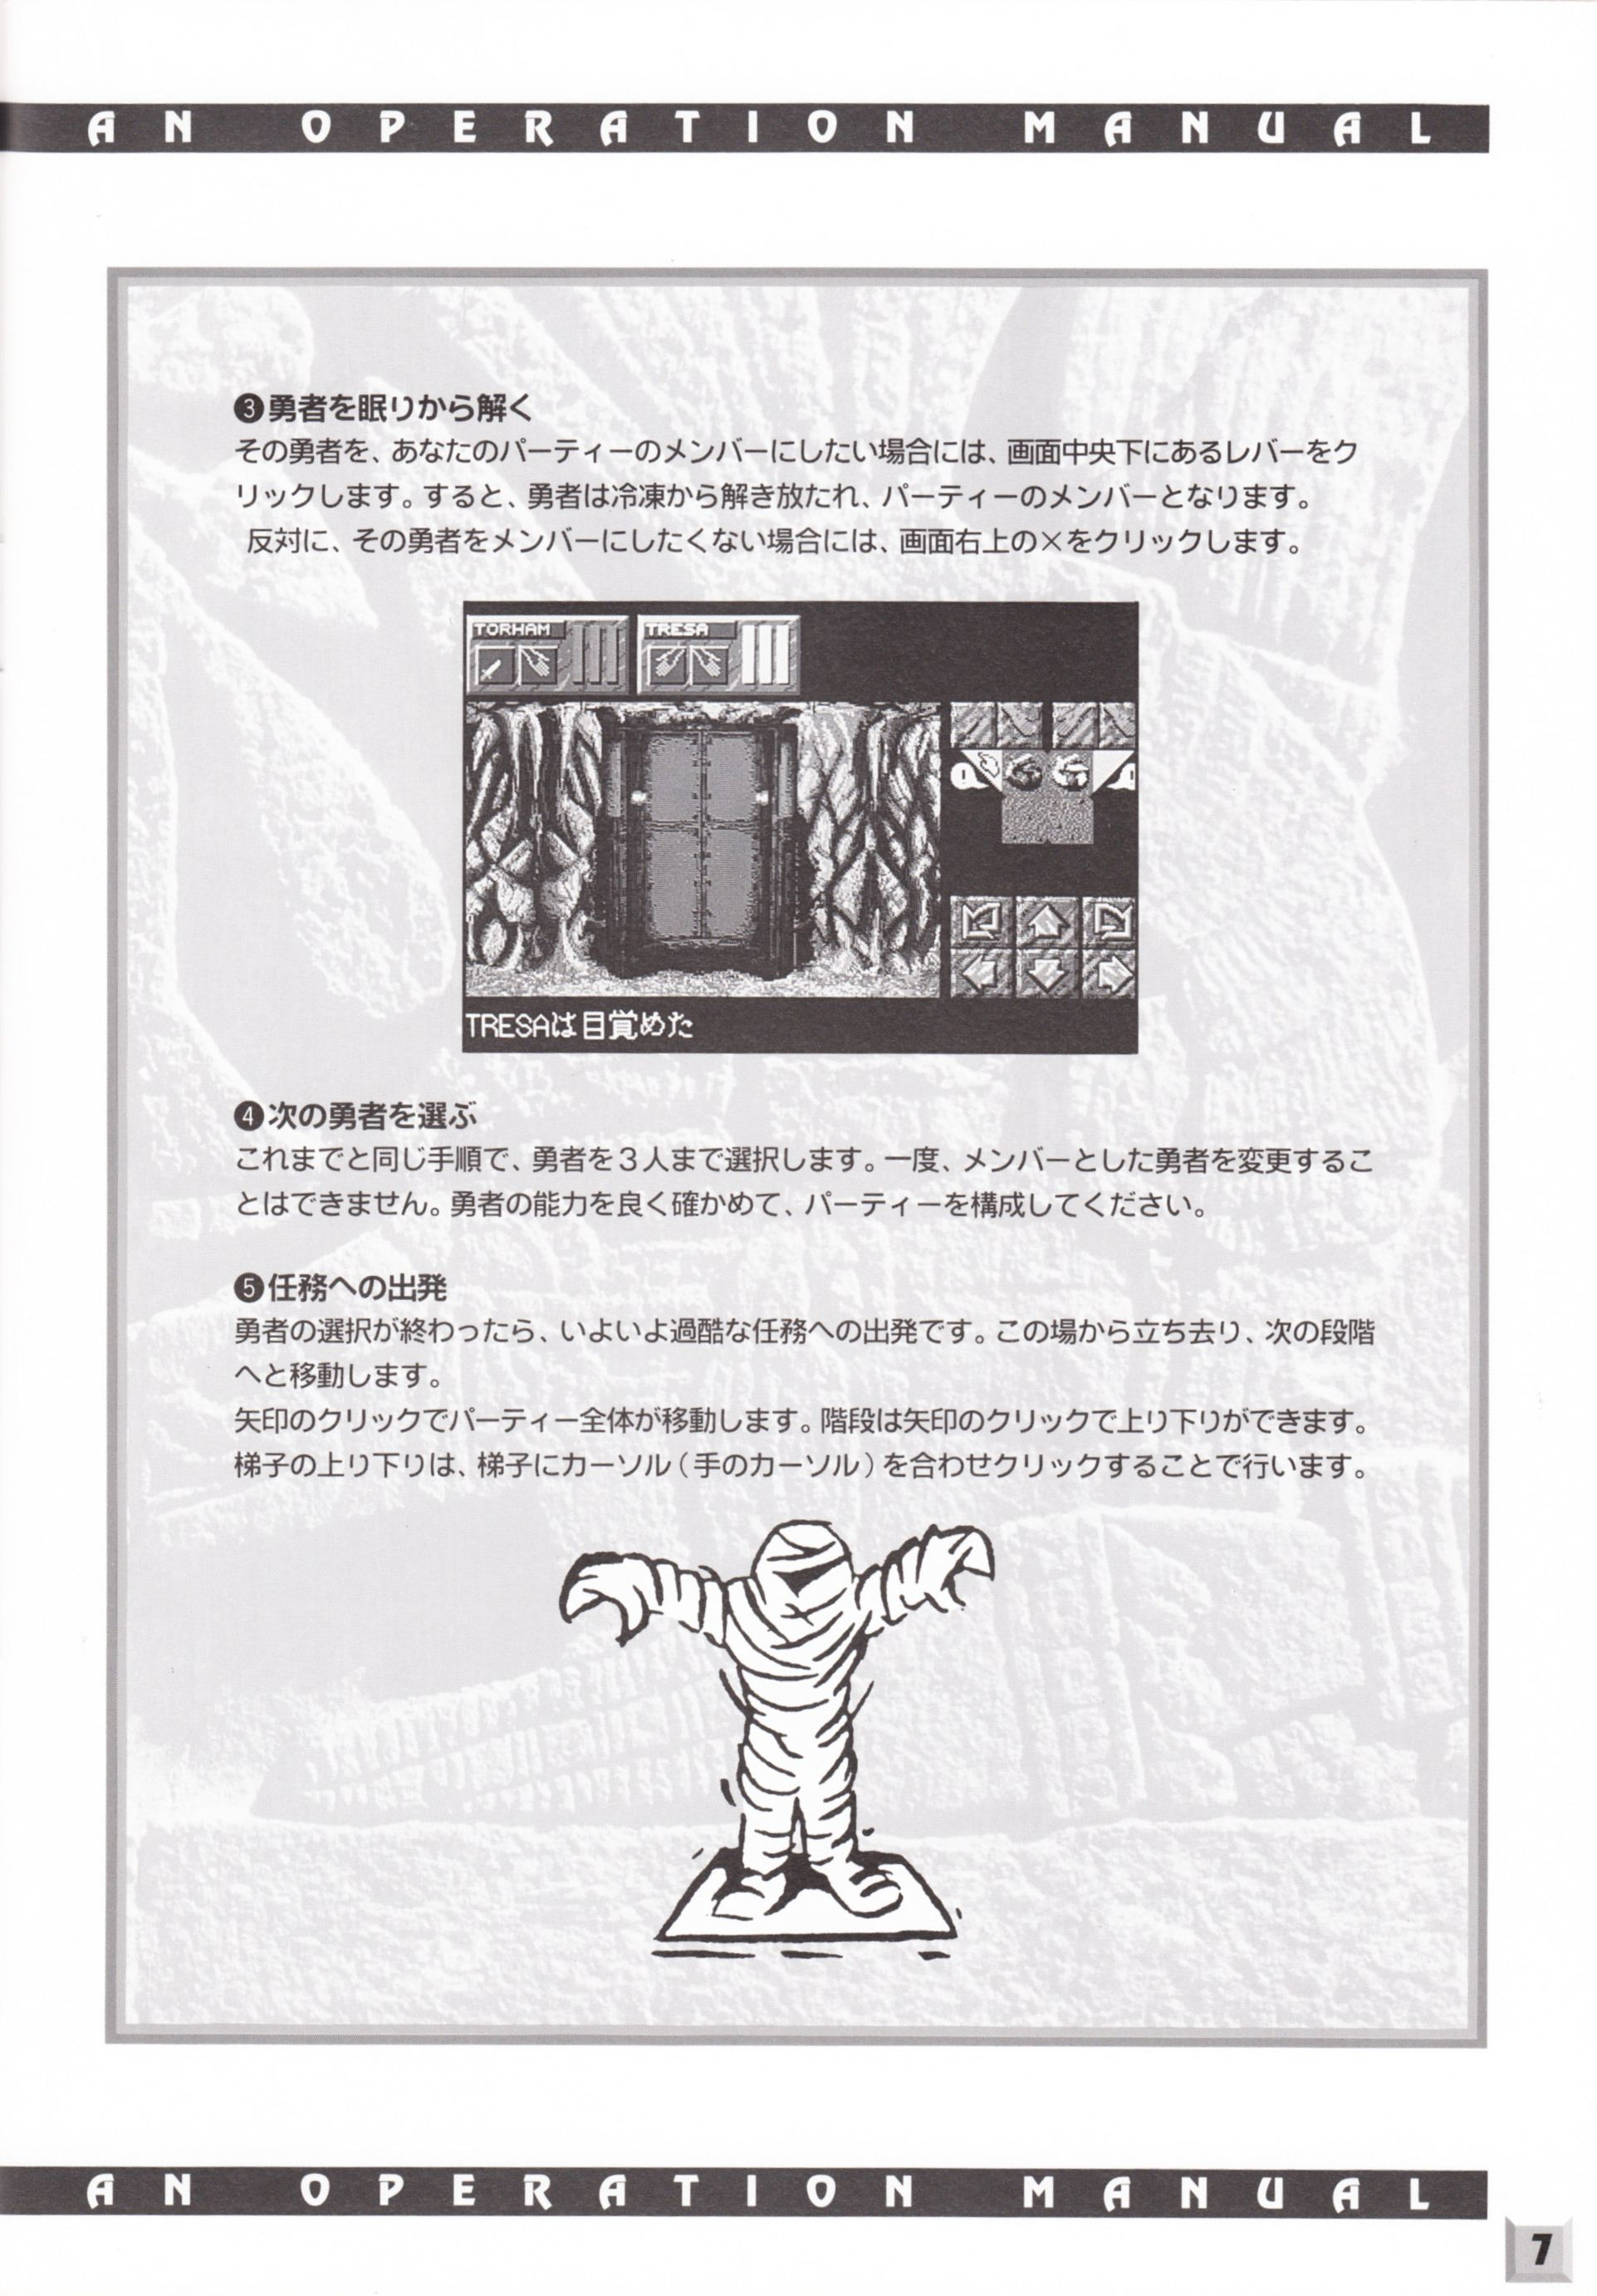 Game - Dungeon Master II - JP - PC-9801 - 3.5-inch - An Operation Manual - Page 009 - Scan